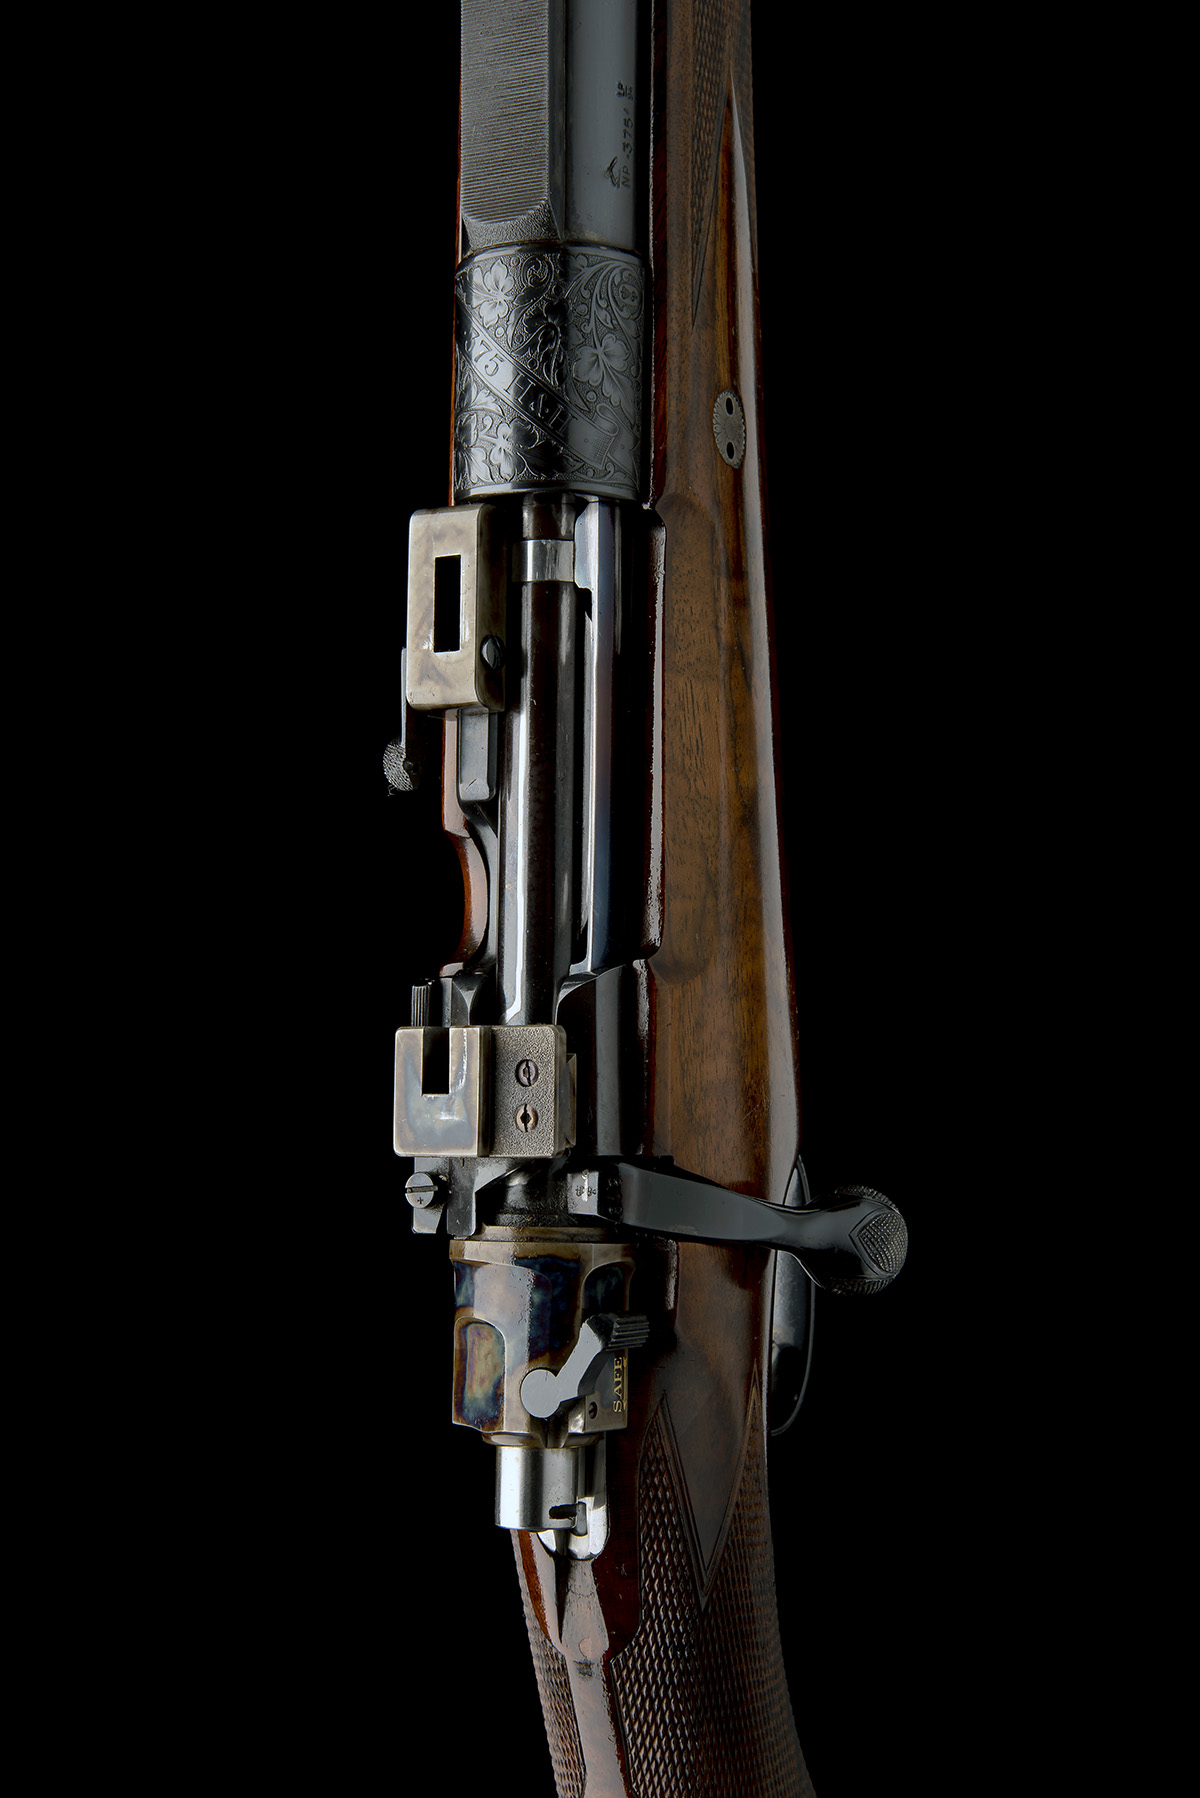 J. RIGBY & CO. A FINE, HUNT-ENGRAVED .375 H&H MAGNUM BOLT-MAGAZINE SPORTING RIFLE, serial no. - Image 4 of 12